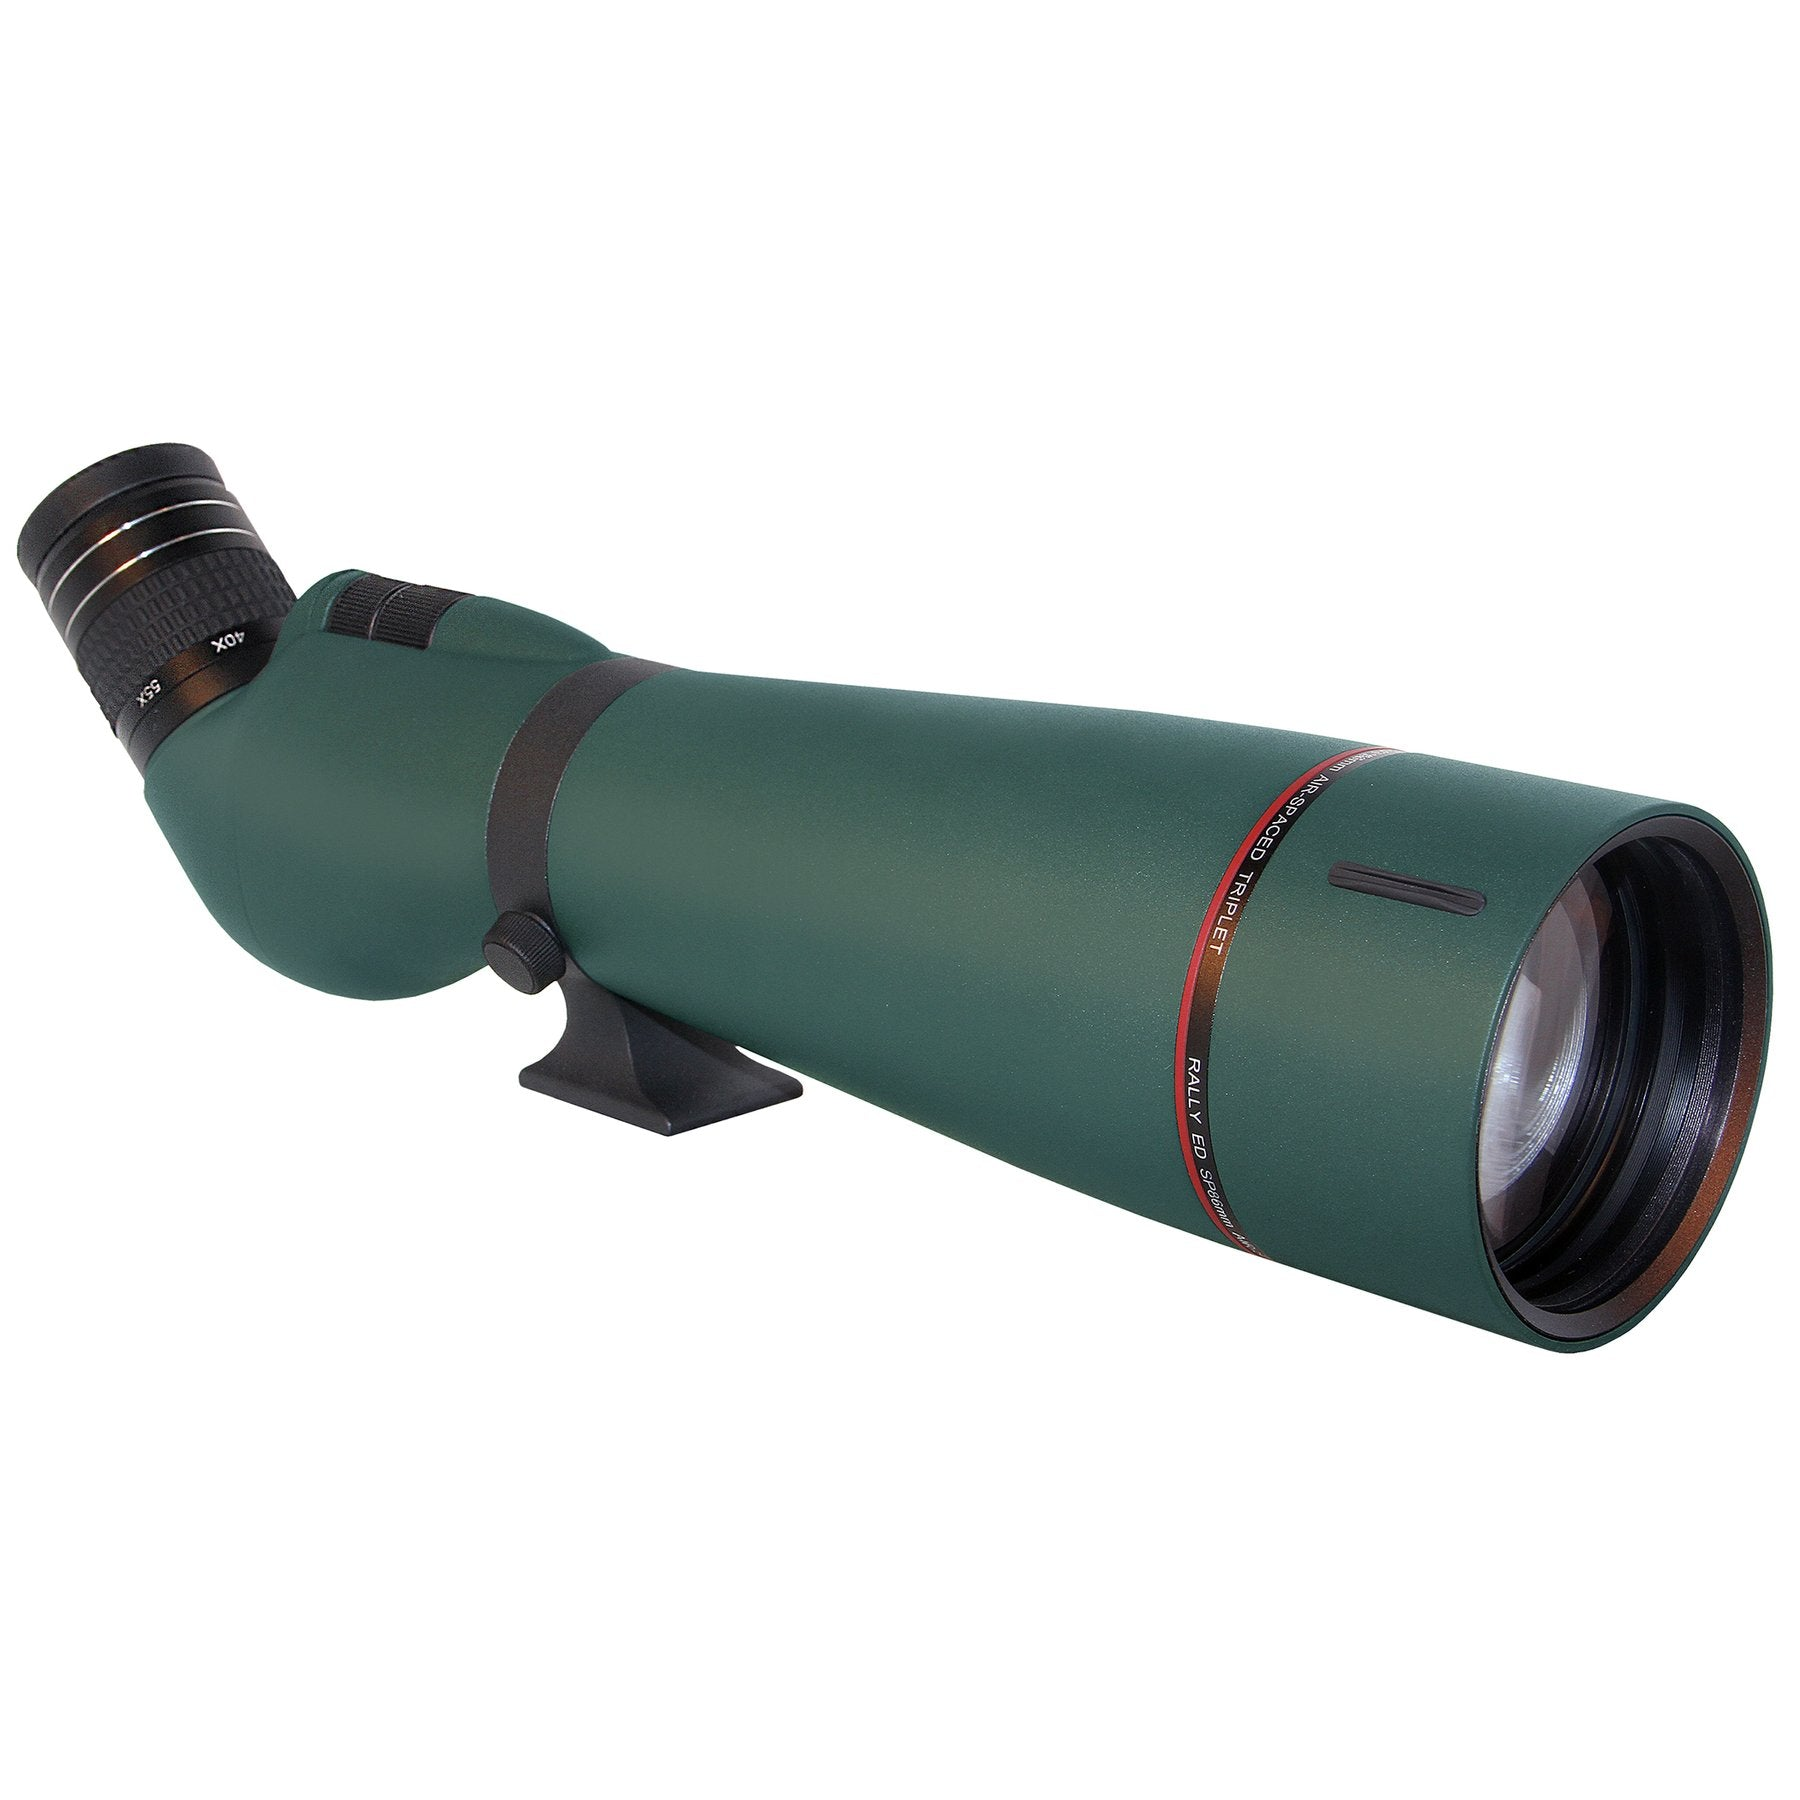 Alpen Rainier 25-75x86 ED HD Spotting Scope - 856